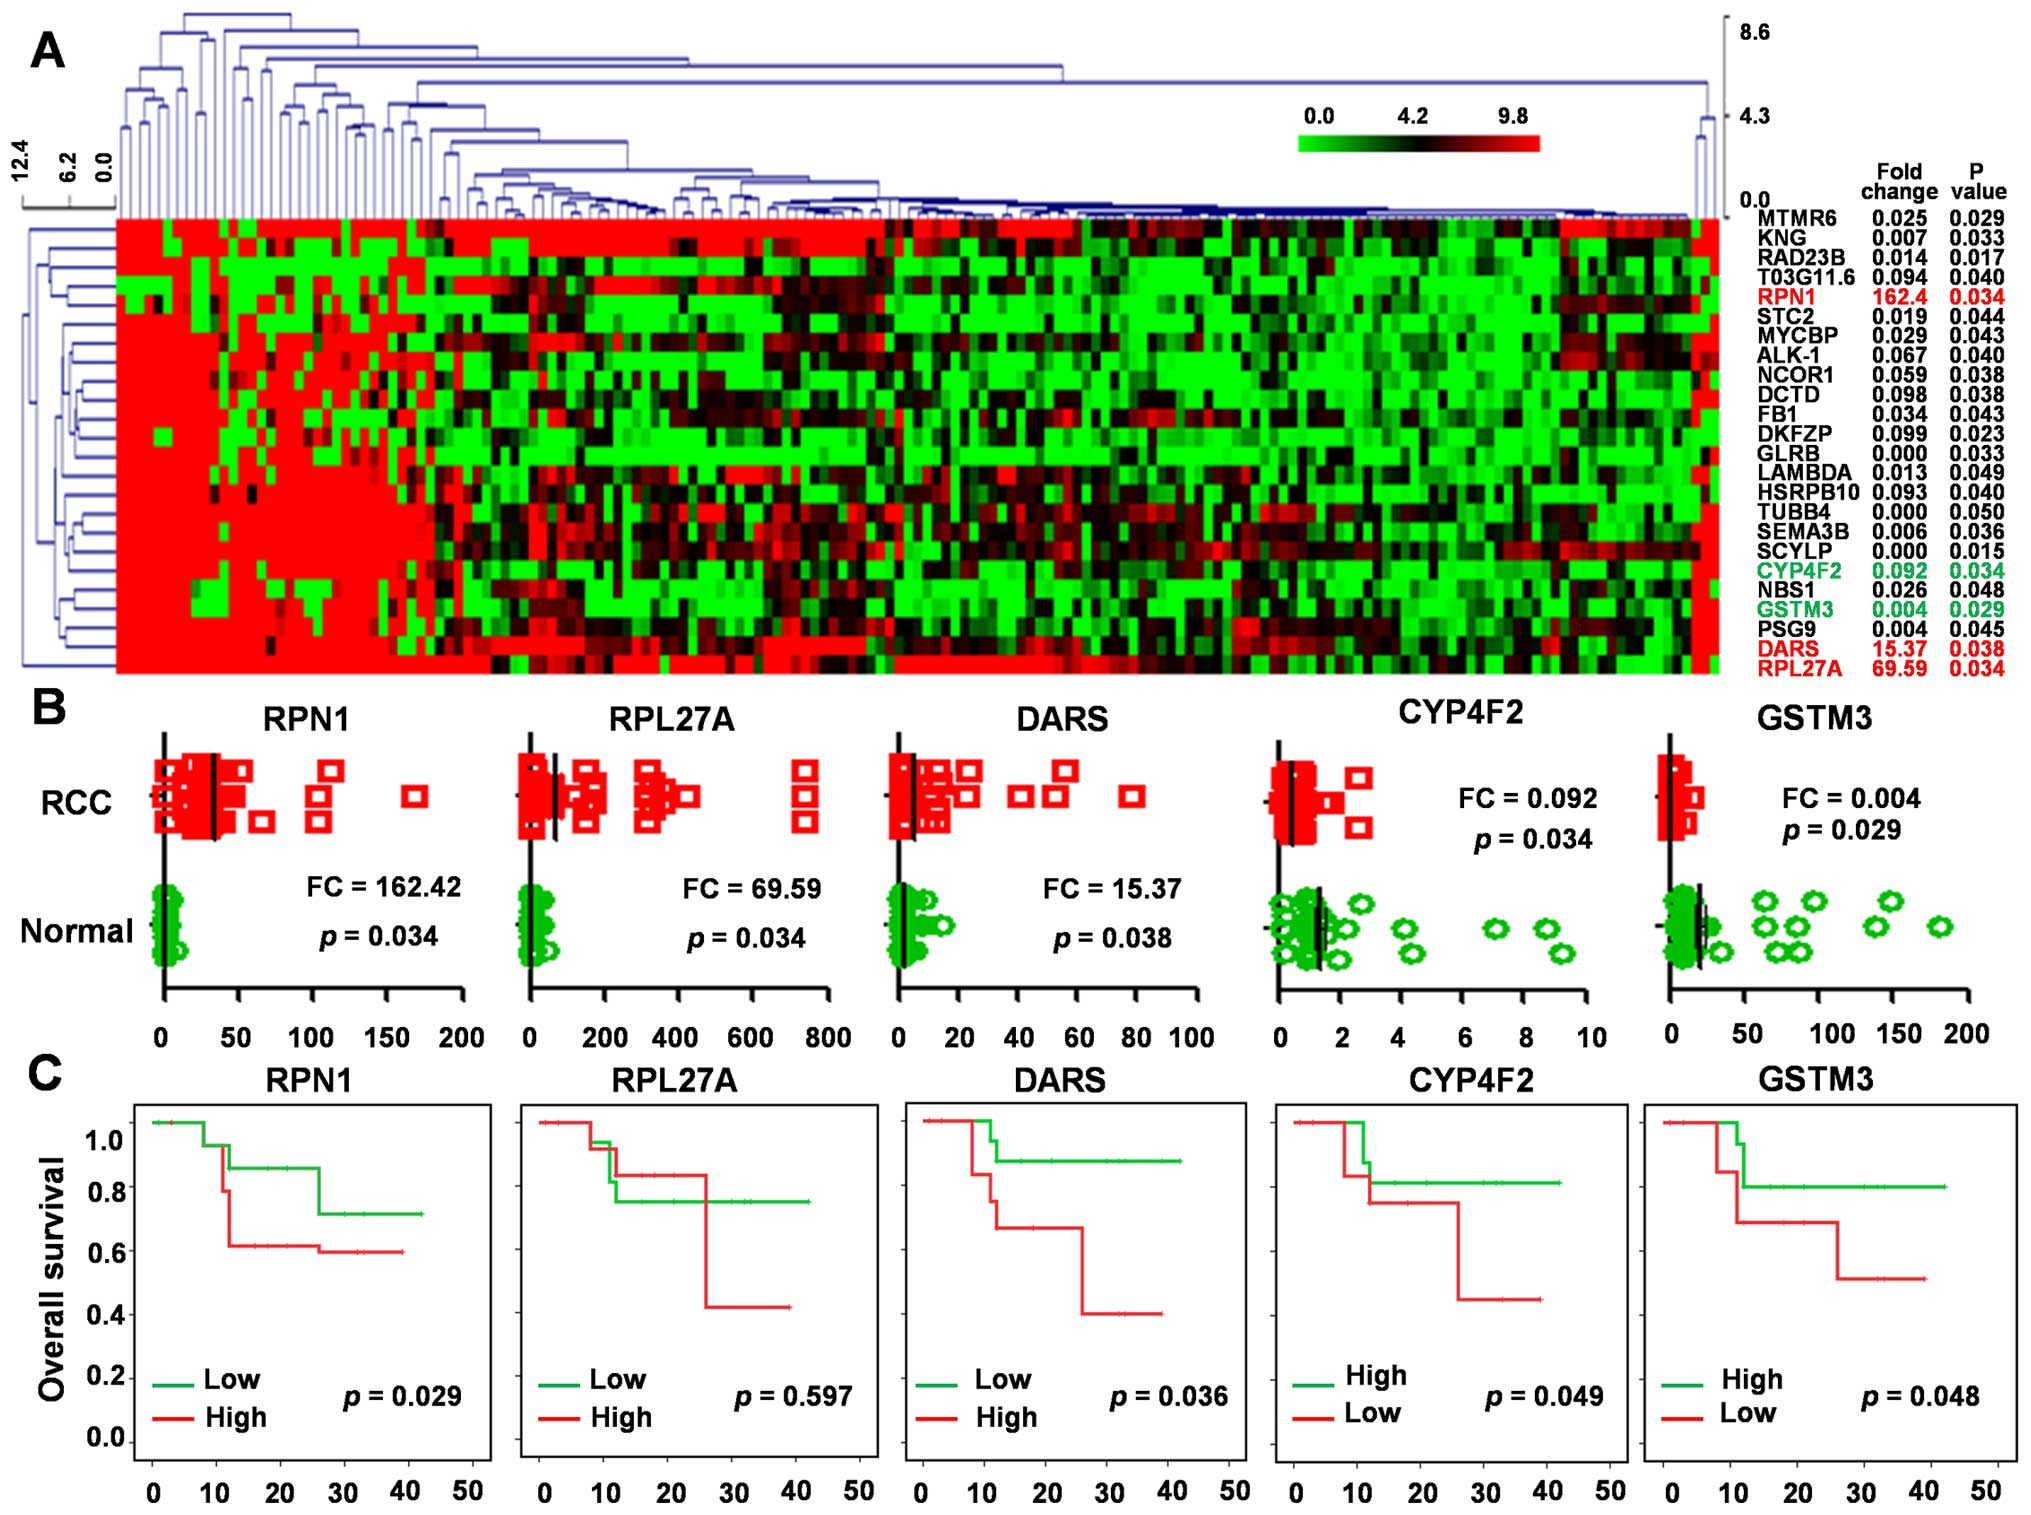 Validation Of Potential Prognostic Factors From Dysregulated Expression Proteins A Clustering Analysis Was Performed Using The MEV 471 Based On 24